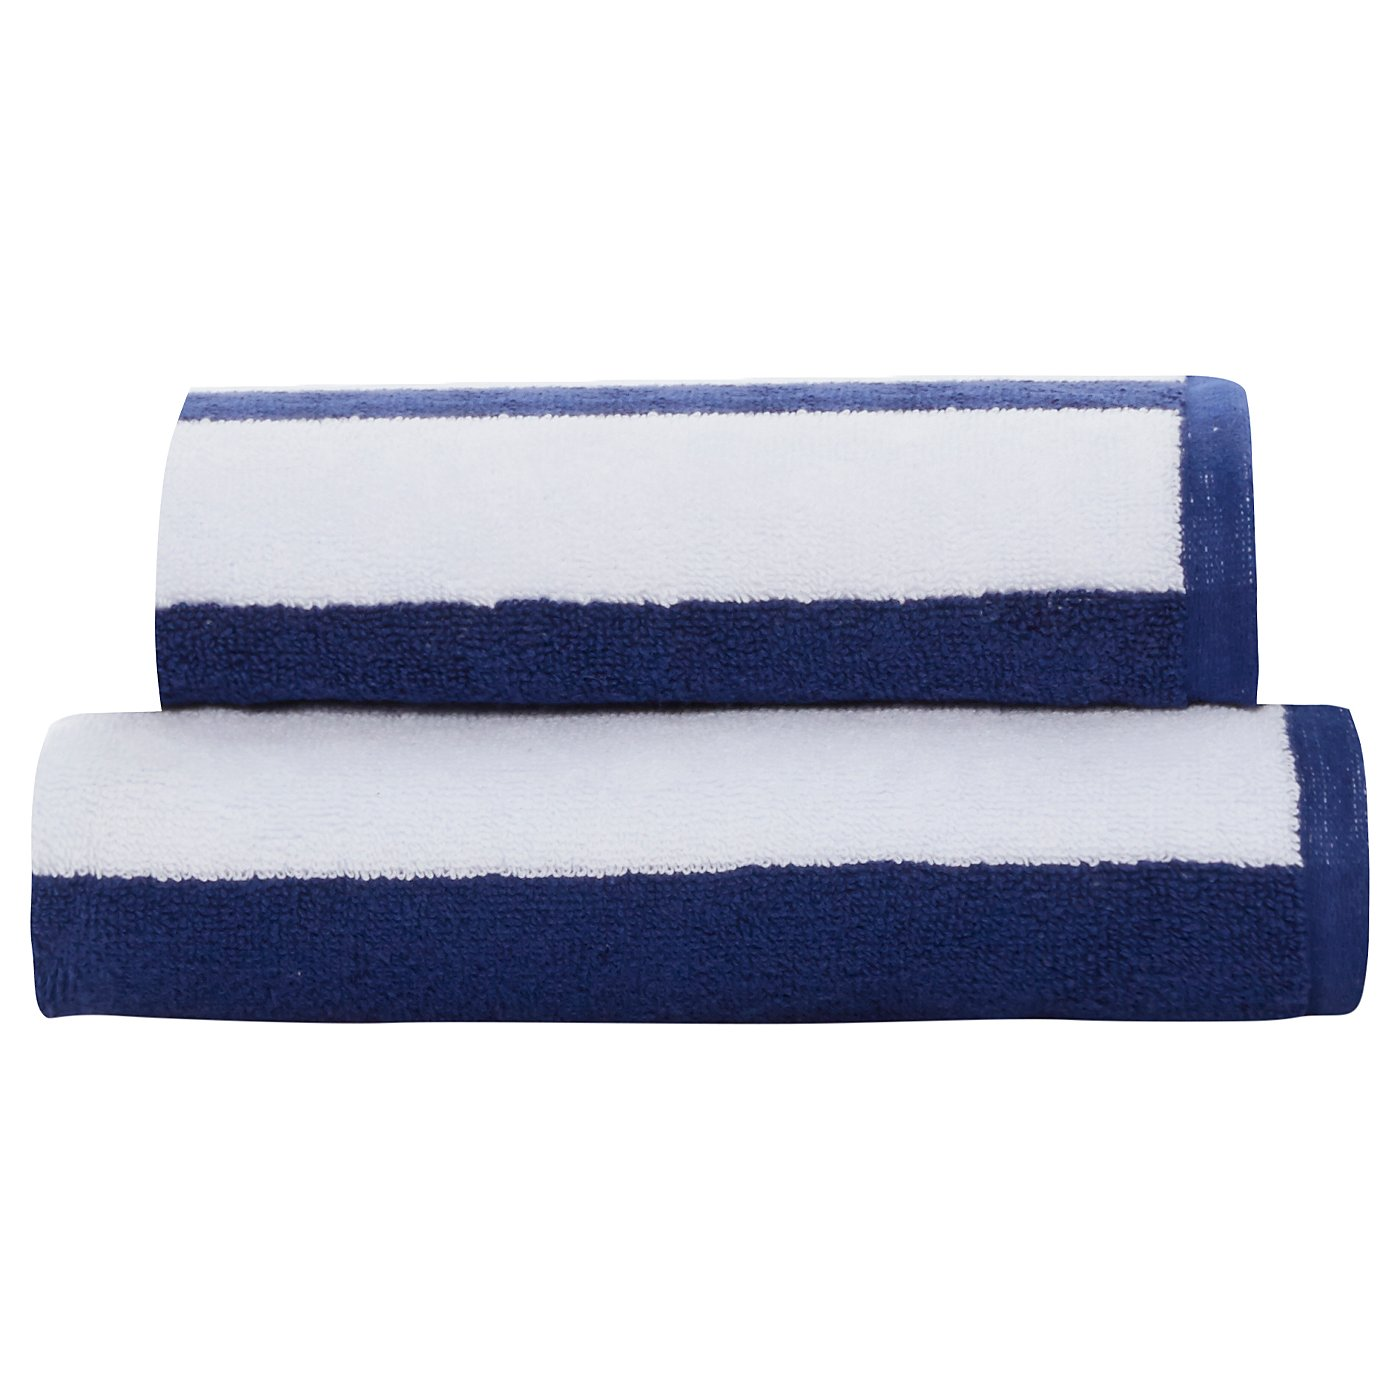 Blue and white bathroom accessories - Electric Blue Bathroom Accessories George Home 100 Cotton Towel Range Blue White Rugby Stripe Loading